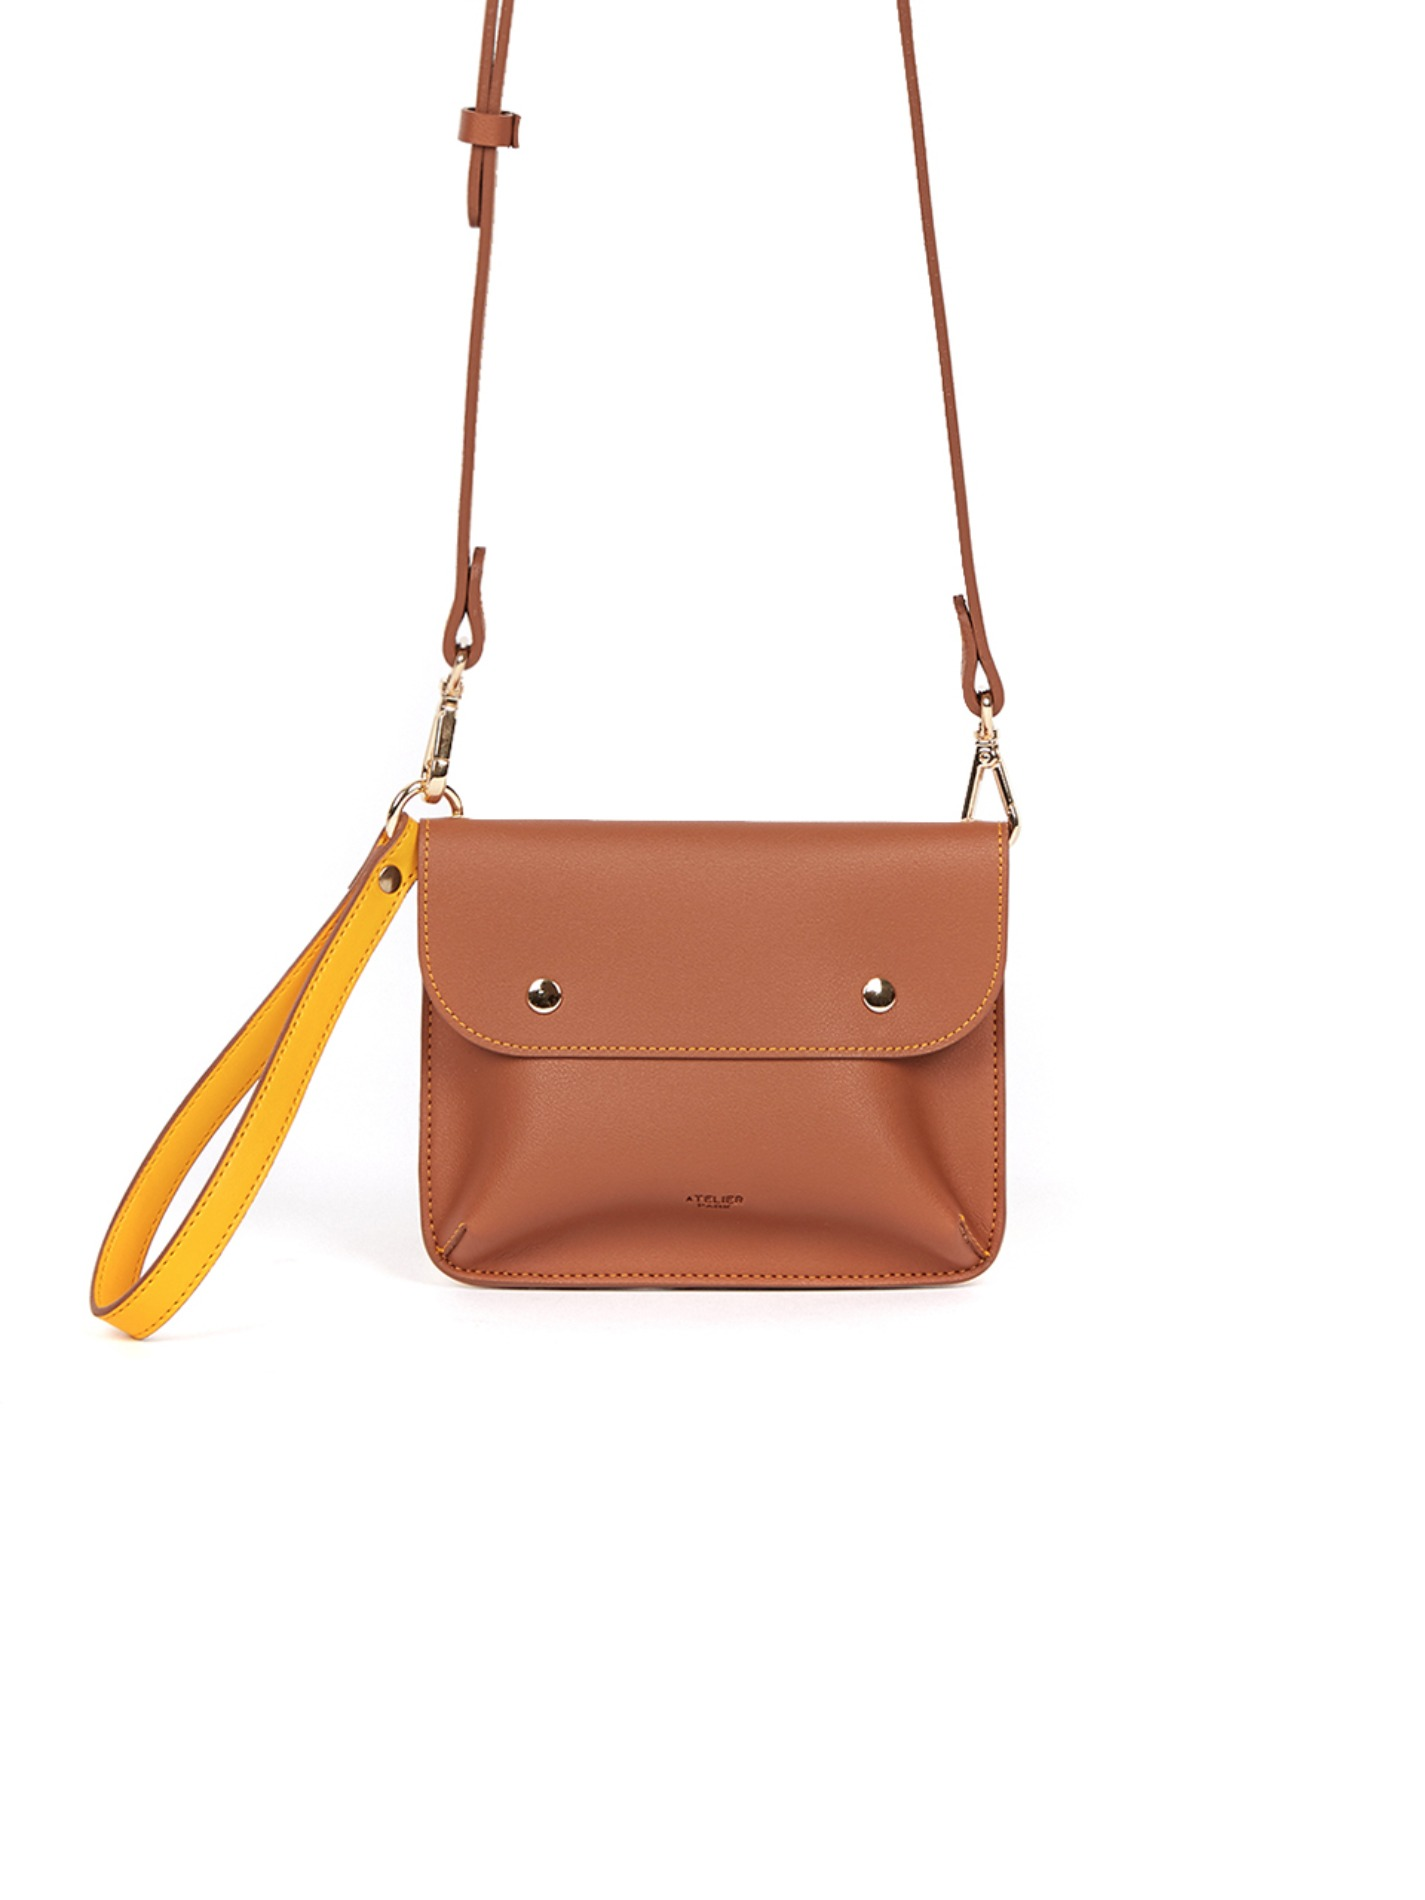 DOUBLE SIDE BAG_CAMEL_8월17일 순차출고